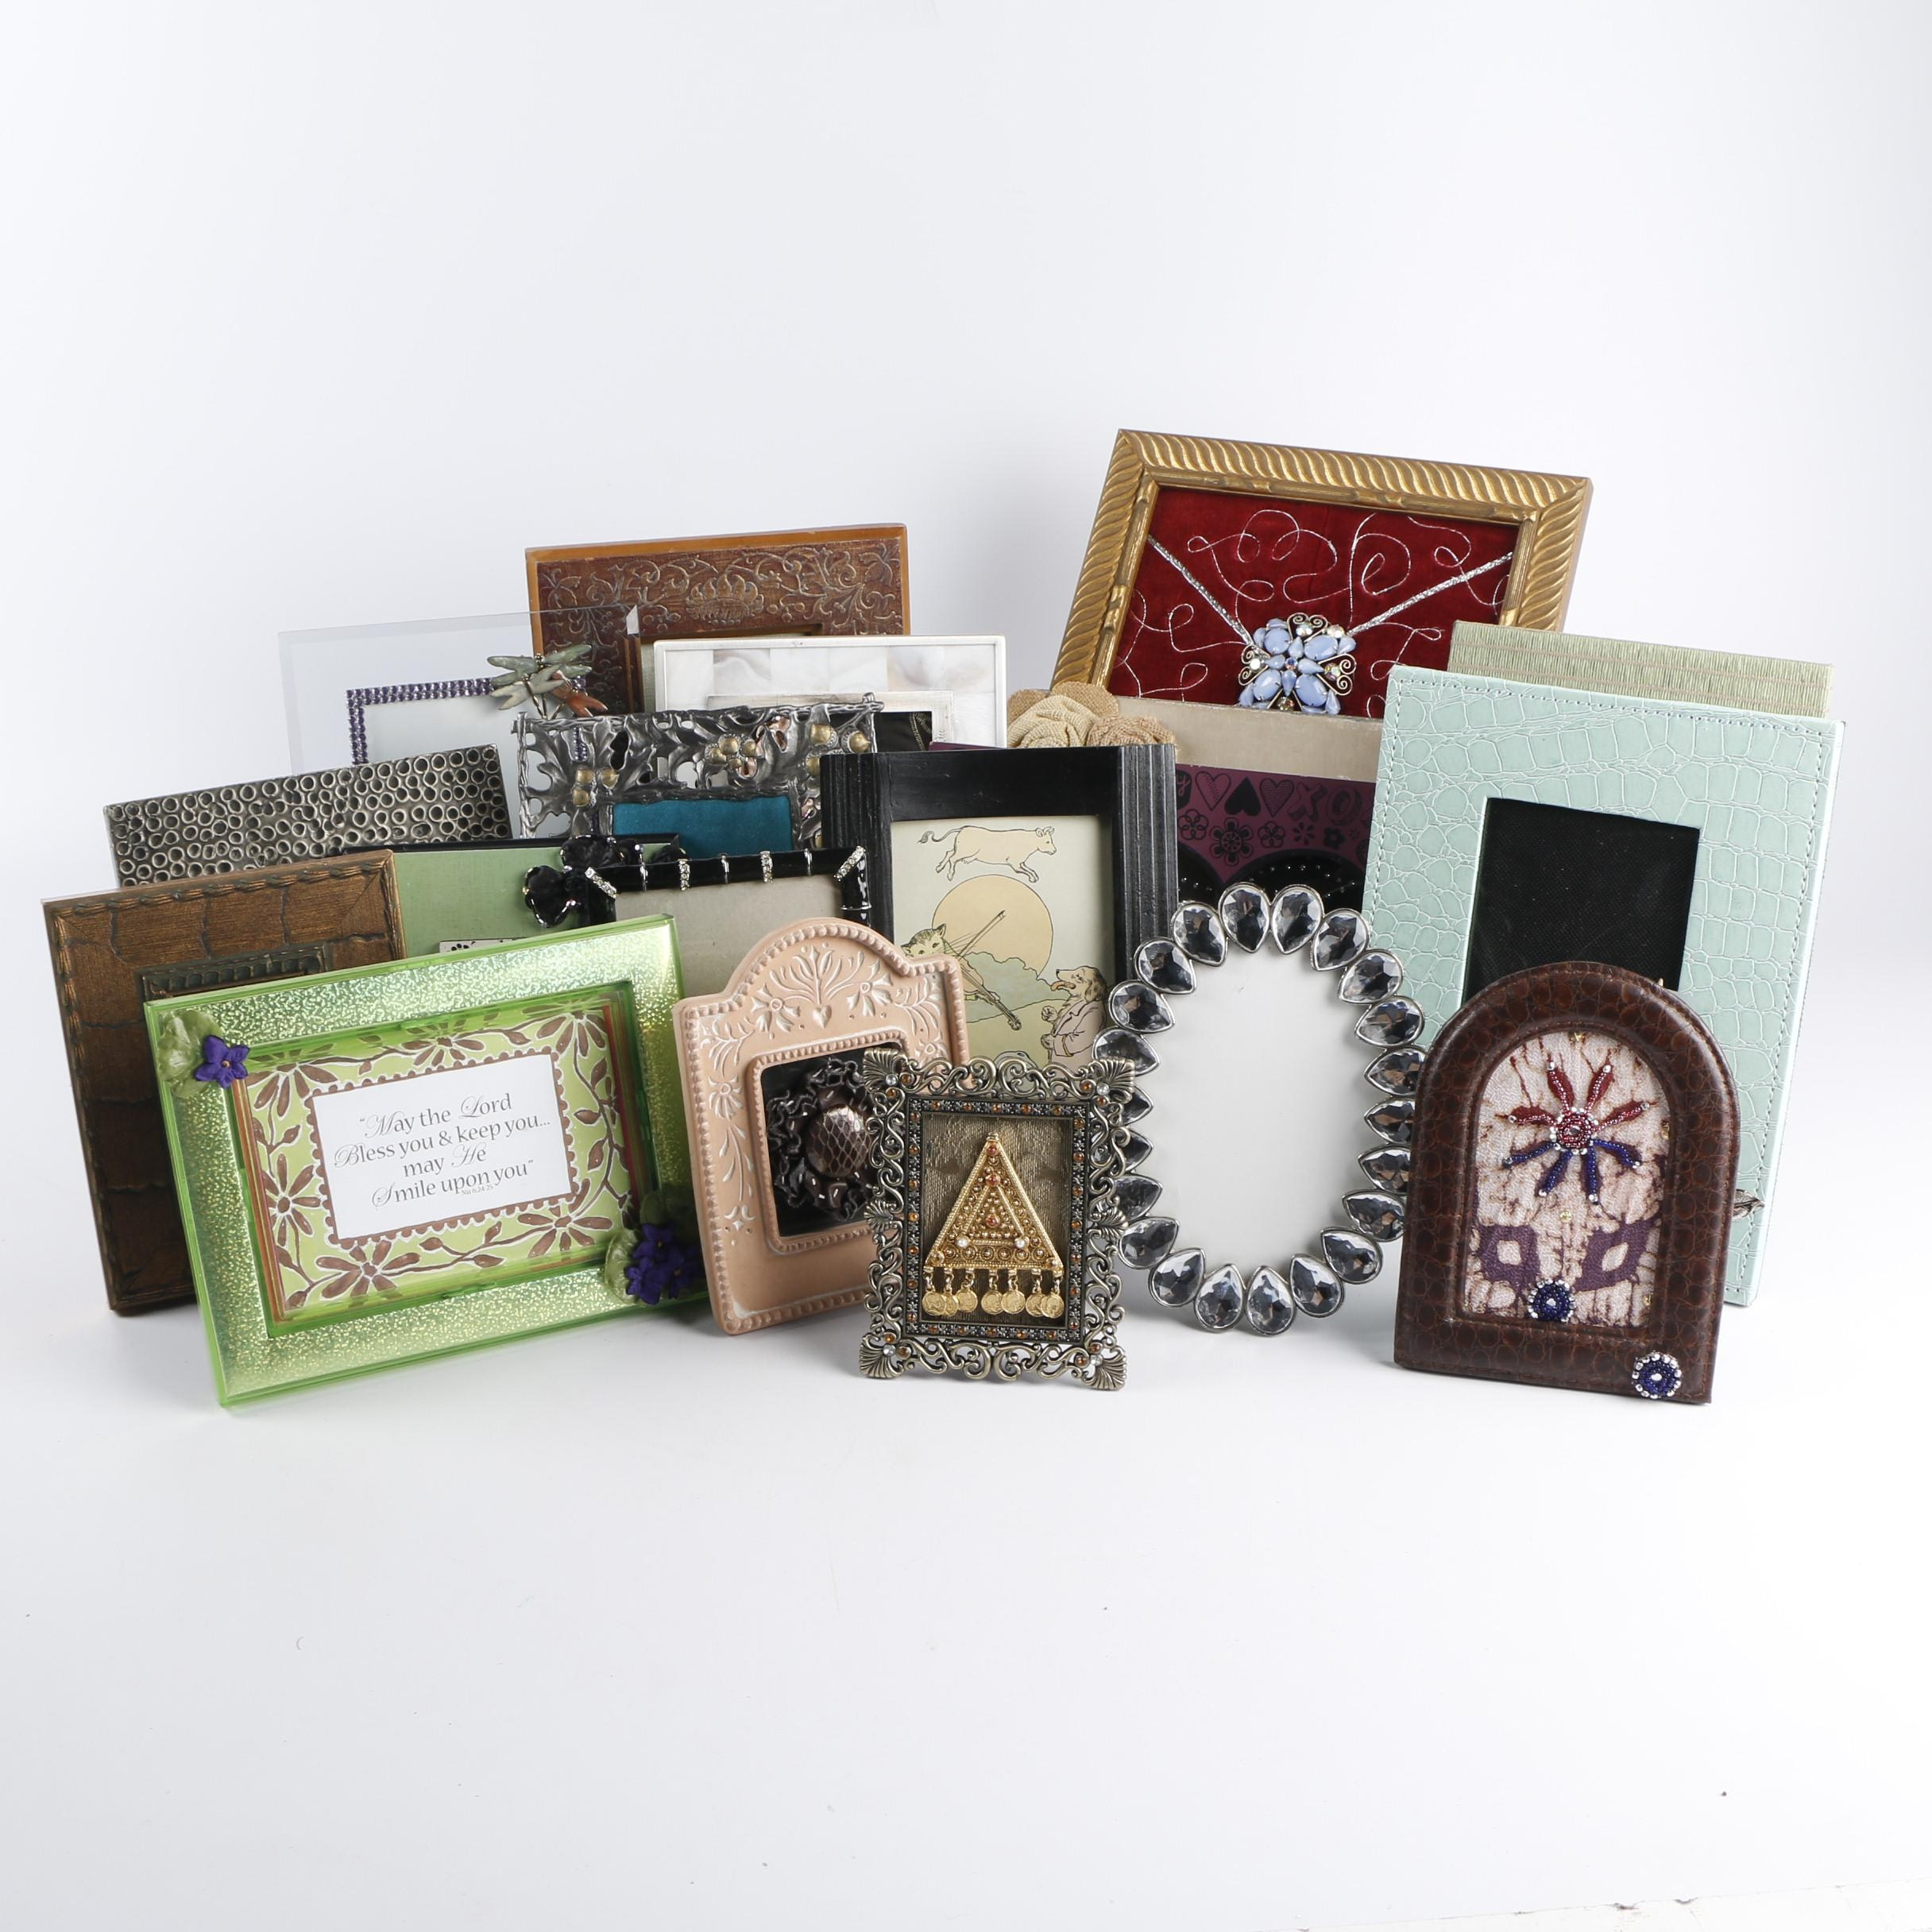 Decorative Picture Frames with Fabric, Beading and Other Décor